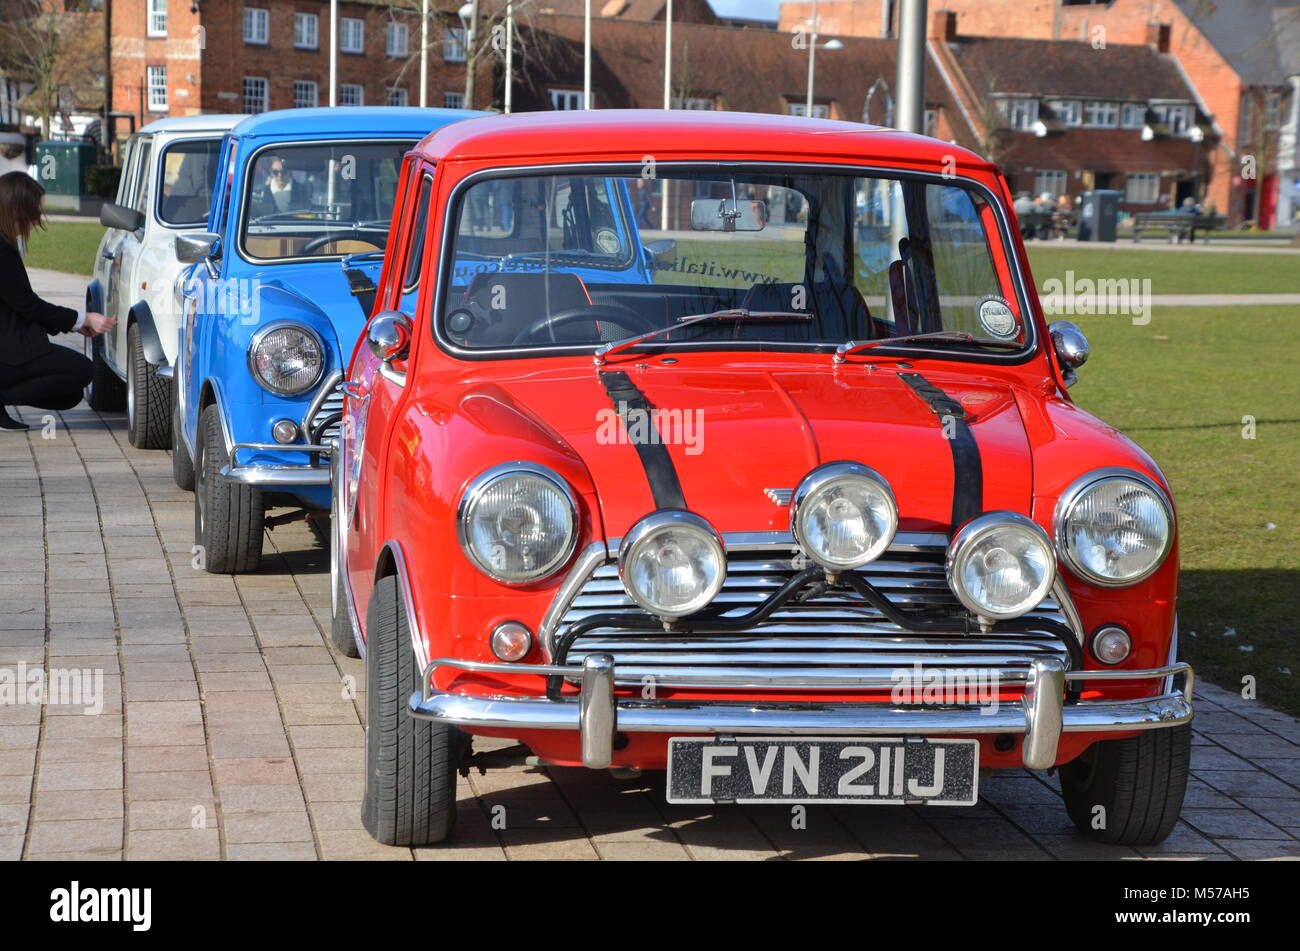 a red white and blue row of mini cooper cars GB - Stock Image